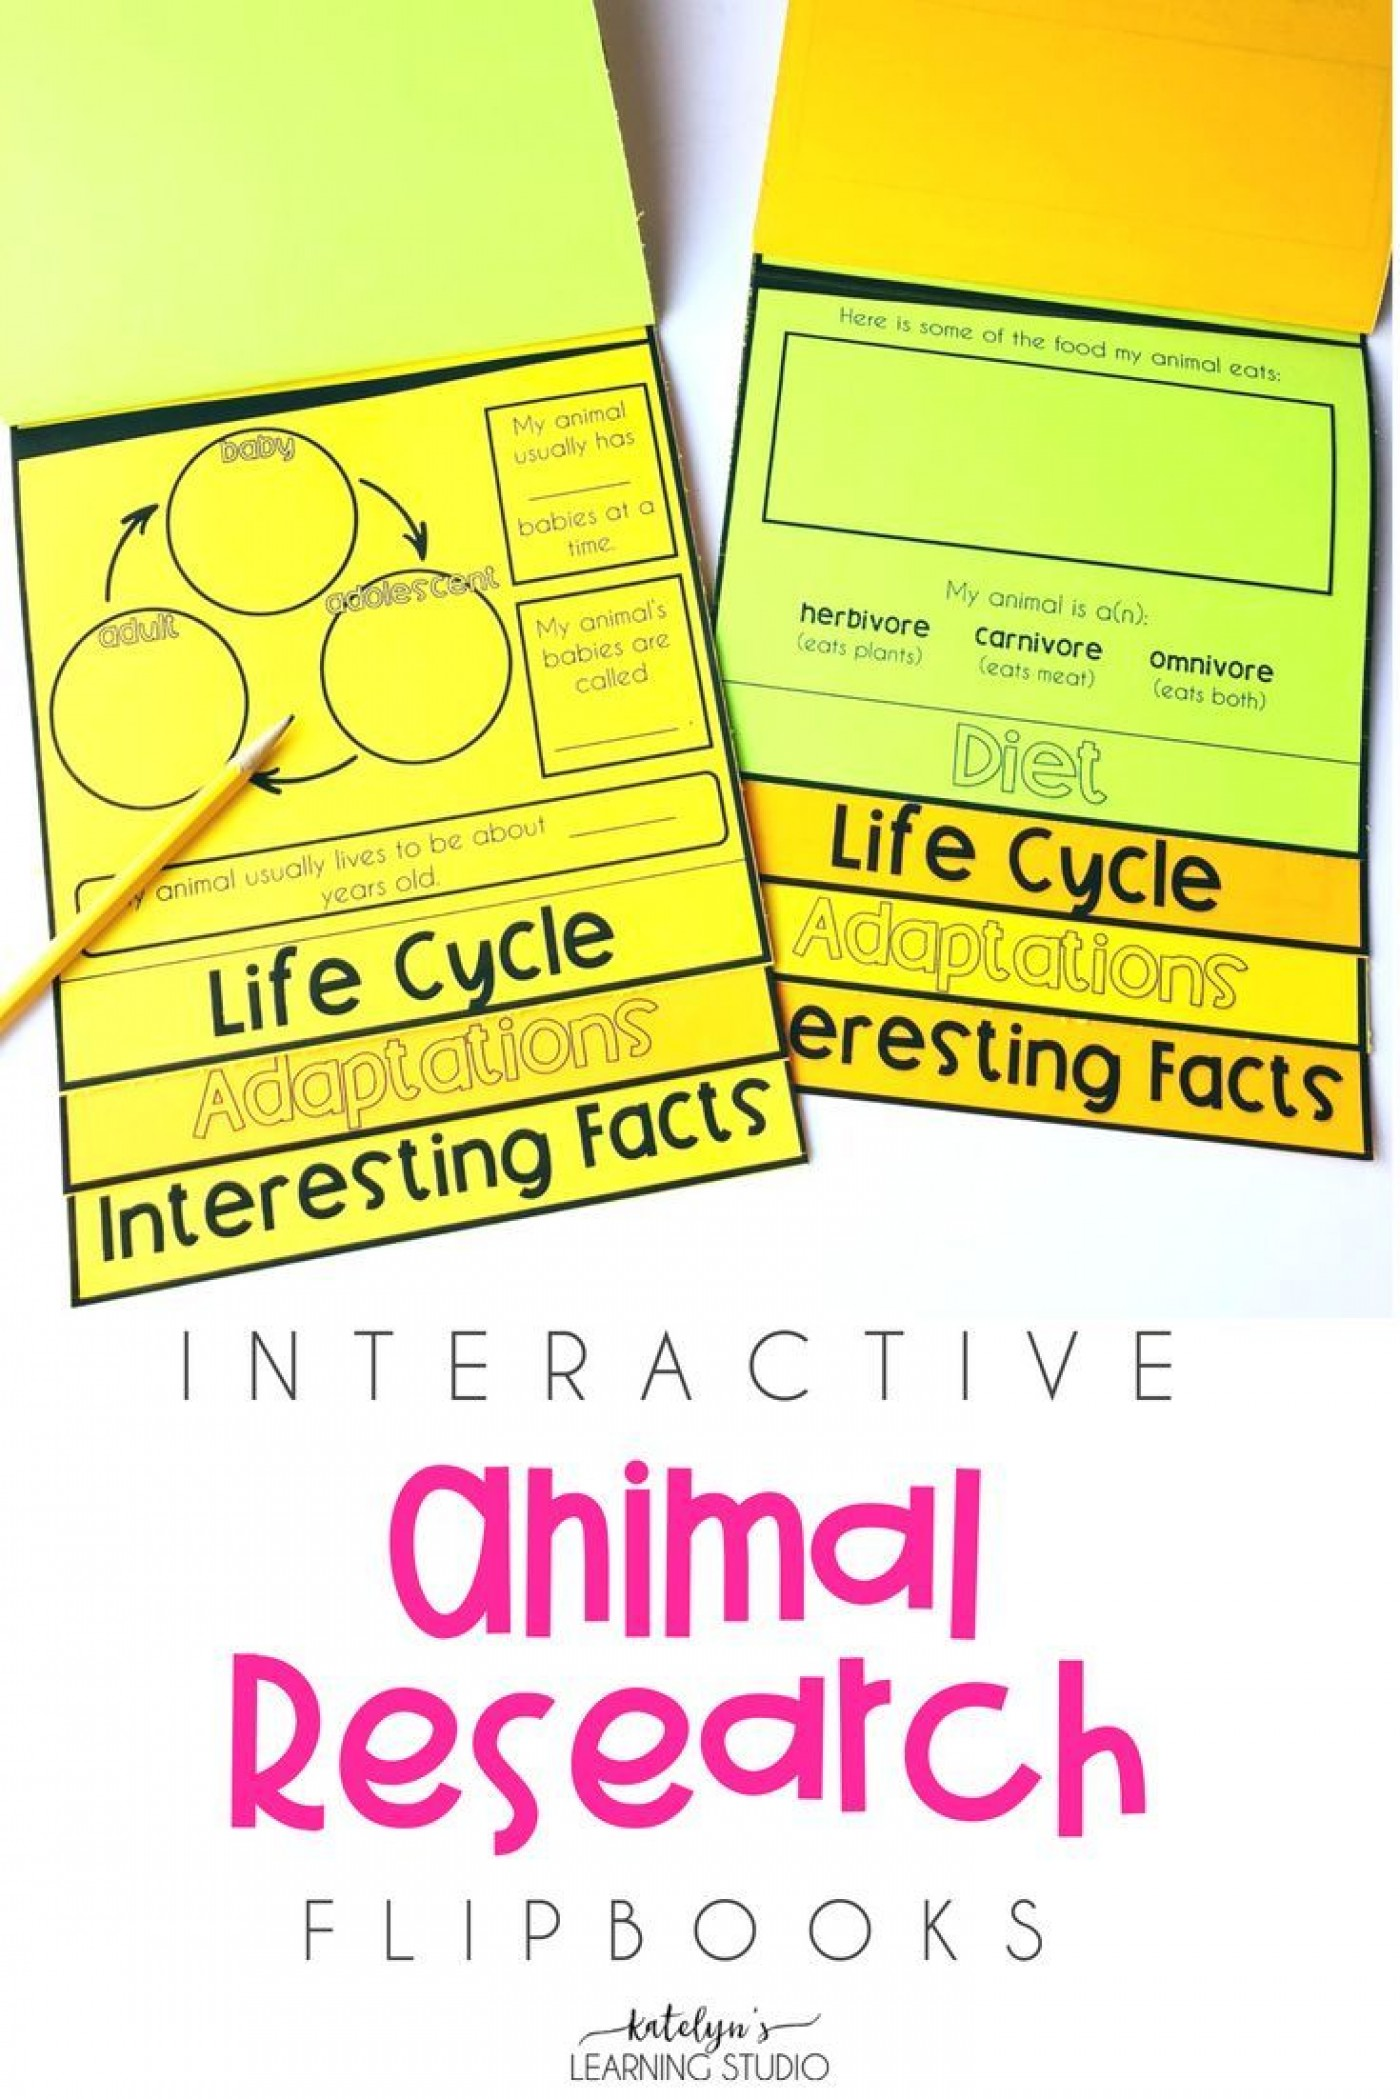 012 Research Paper Animal Awful Ideas Project College Behaviour 1400